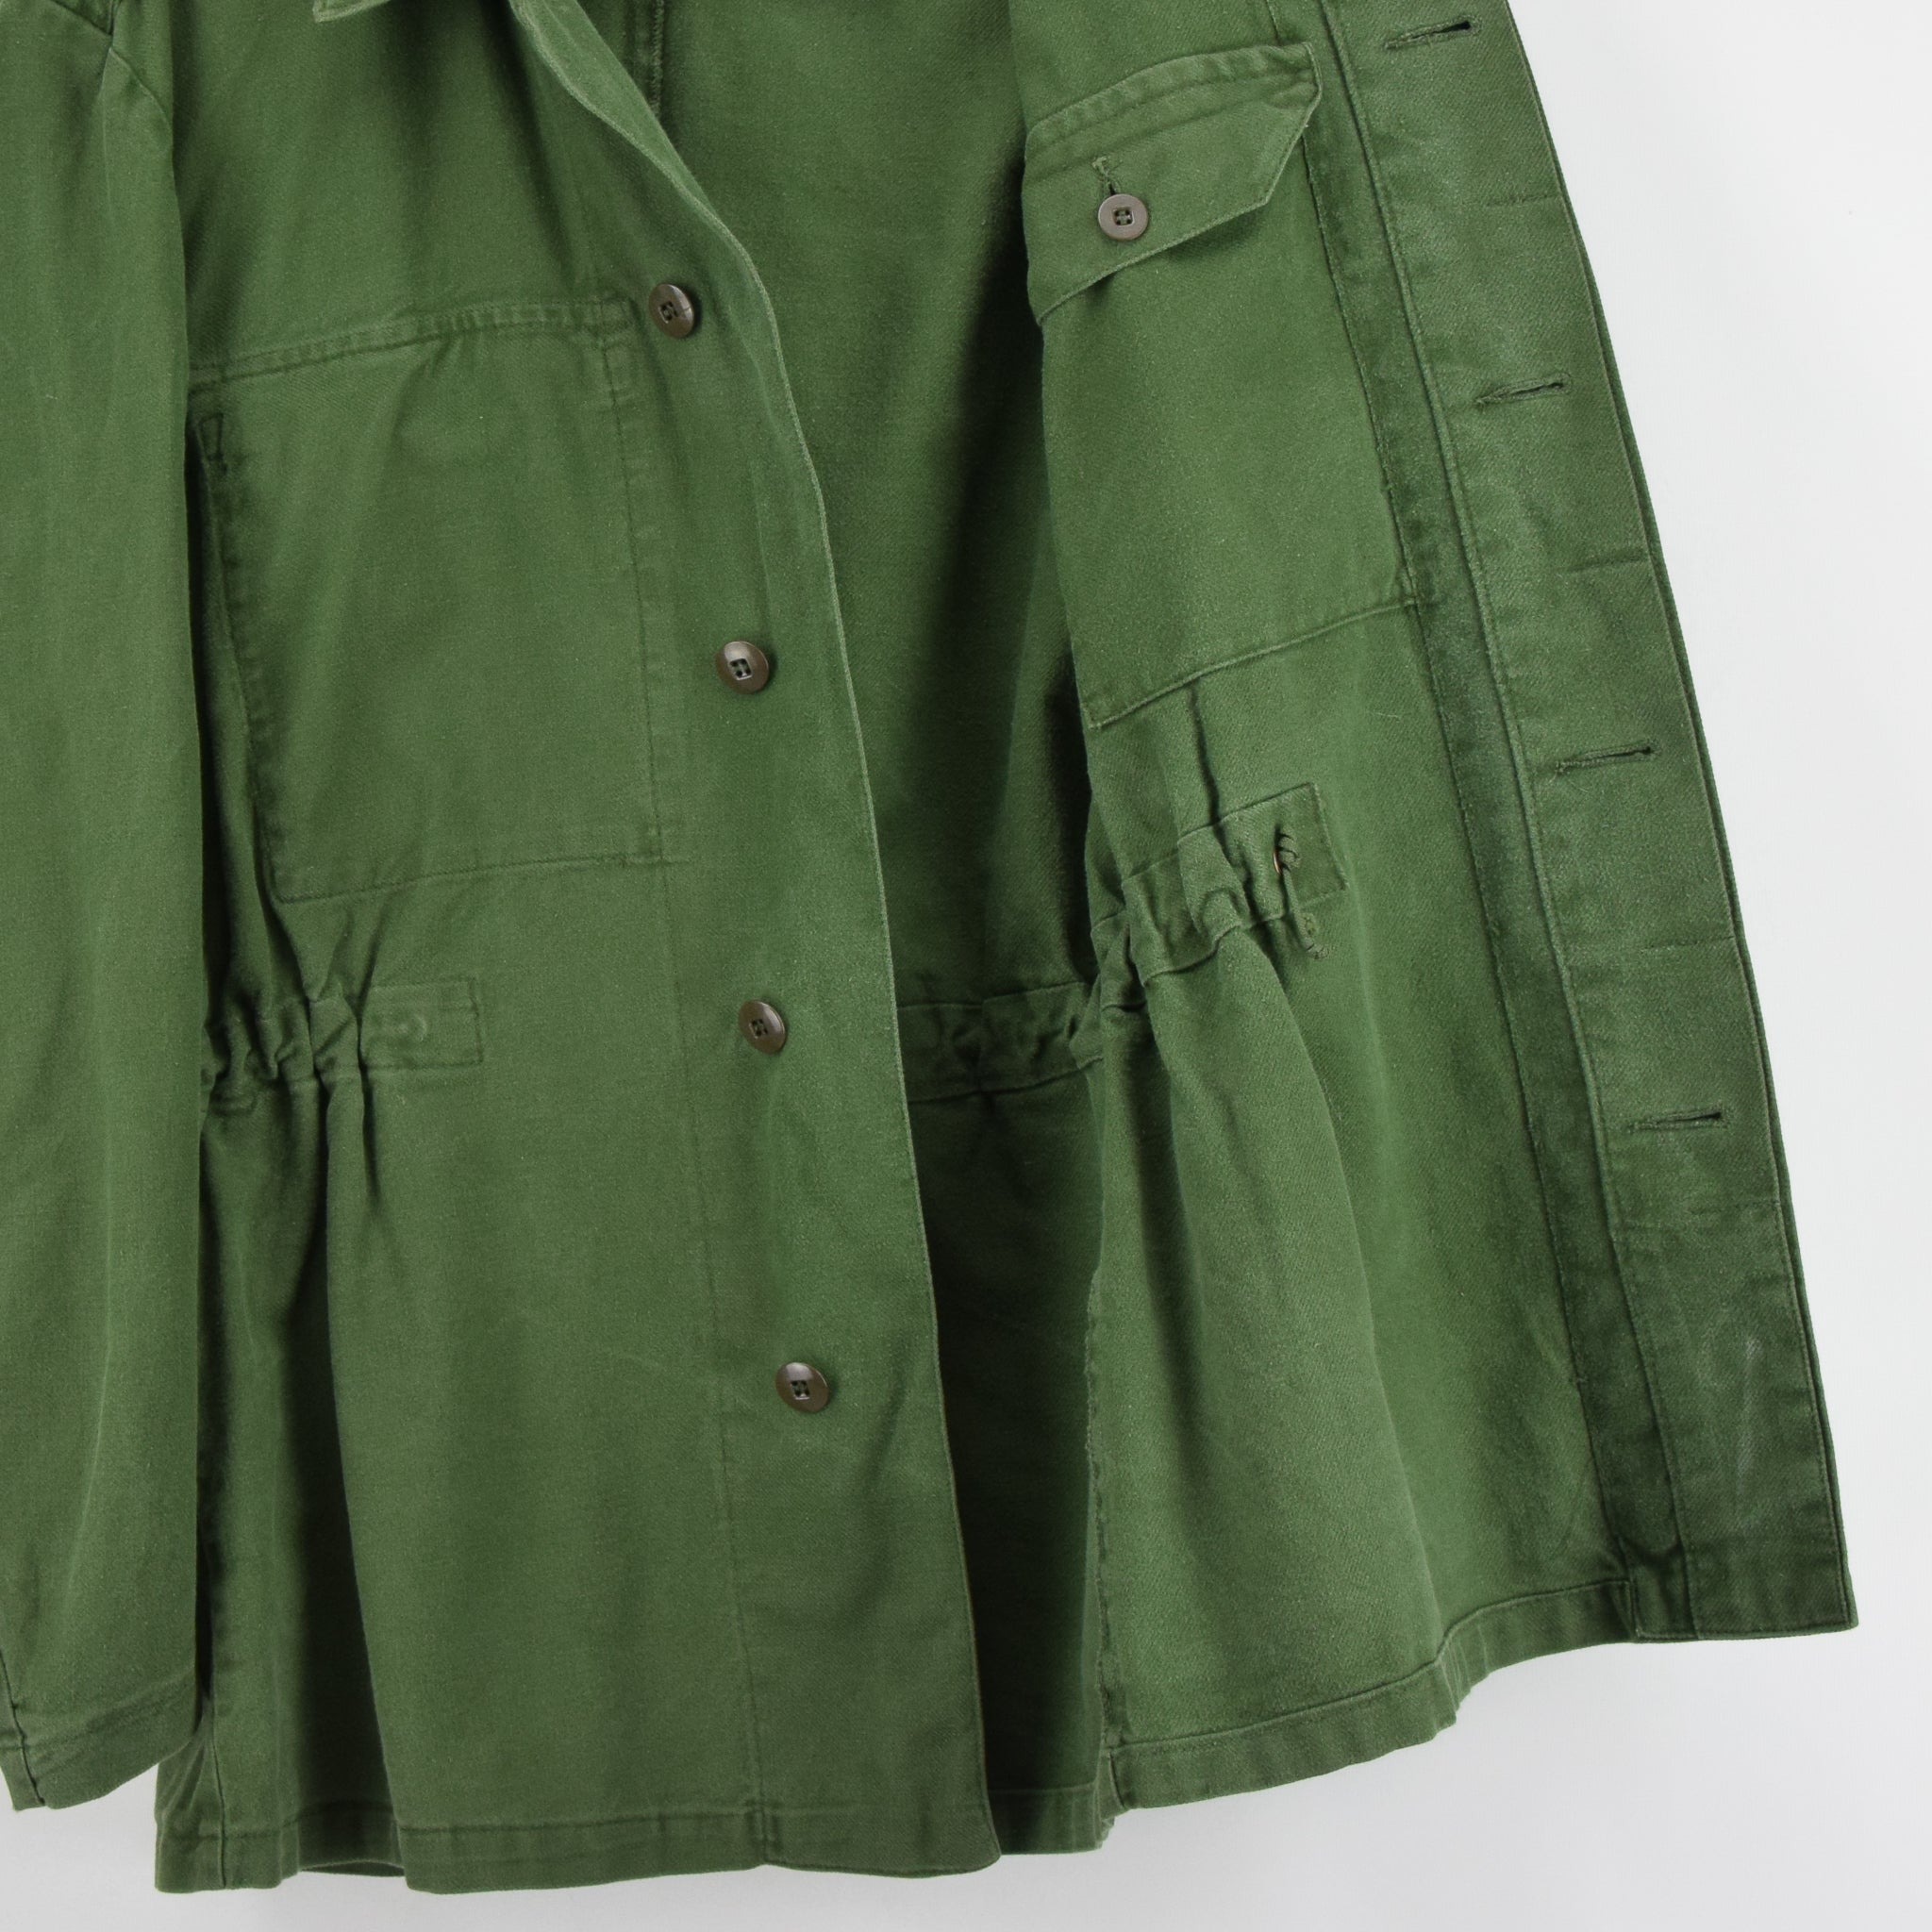 Vintage Swedish Worker Style Distressed Green Military Field Shirt Jacket M lining